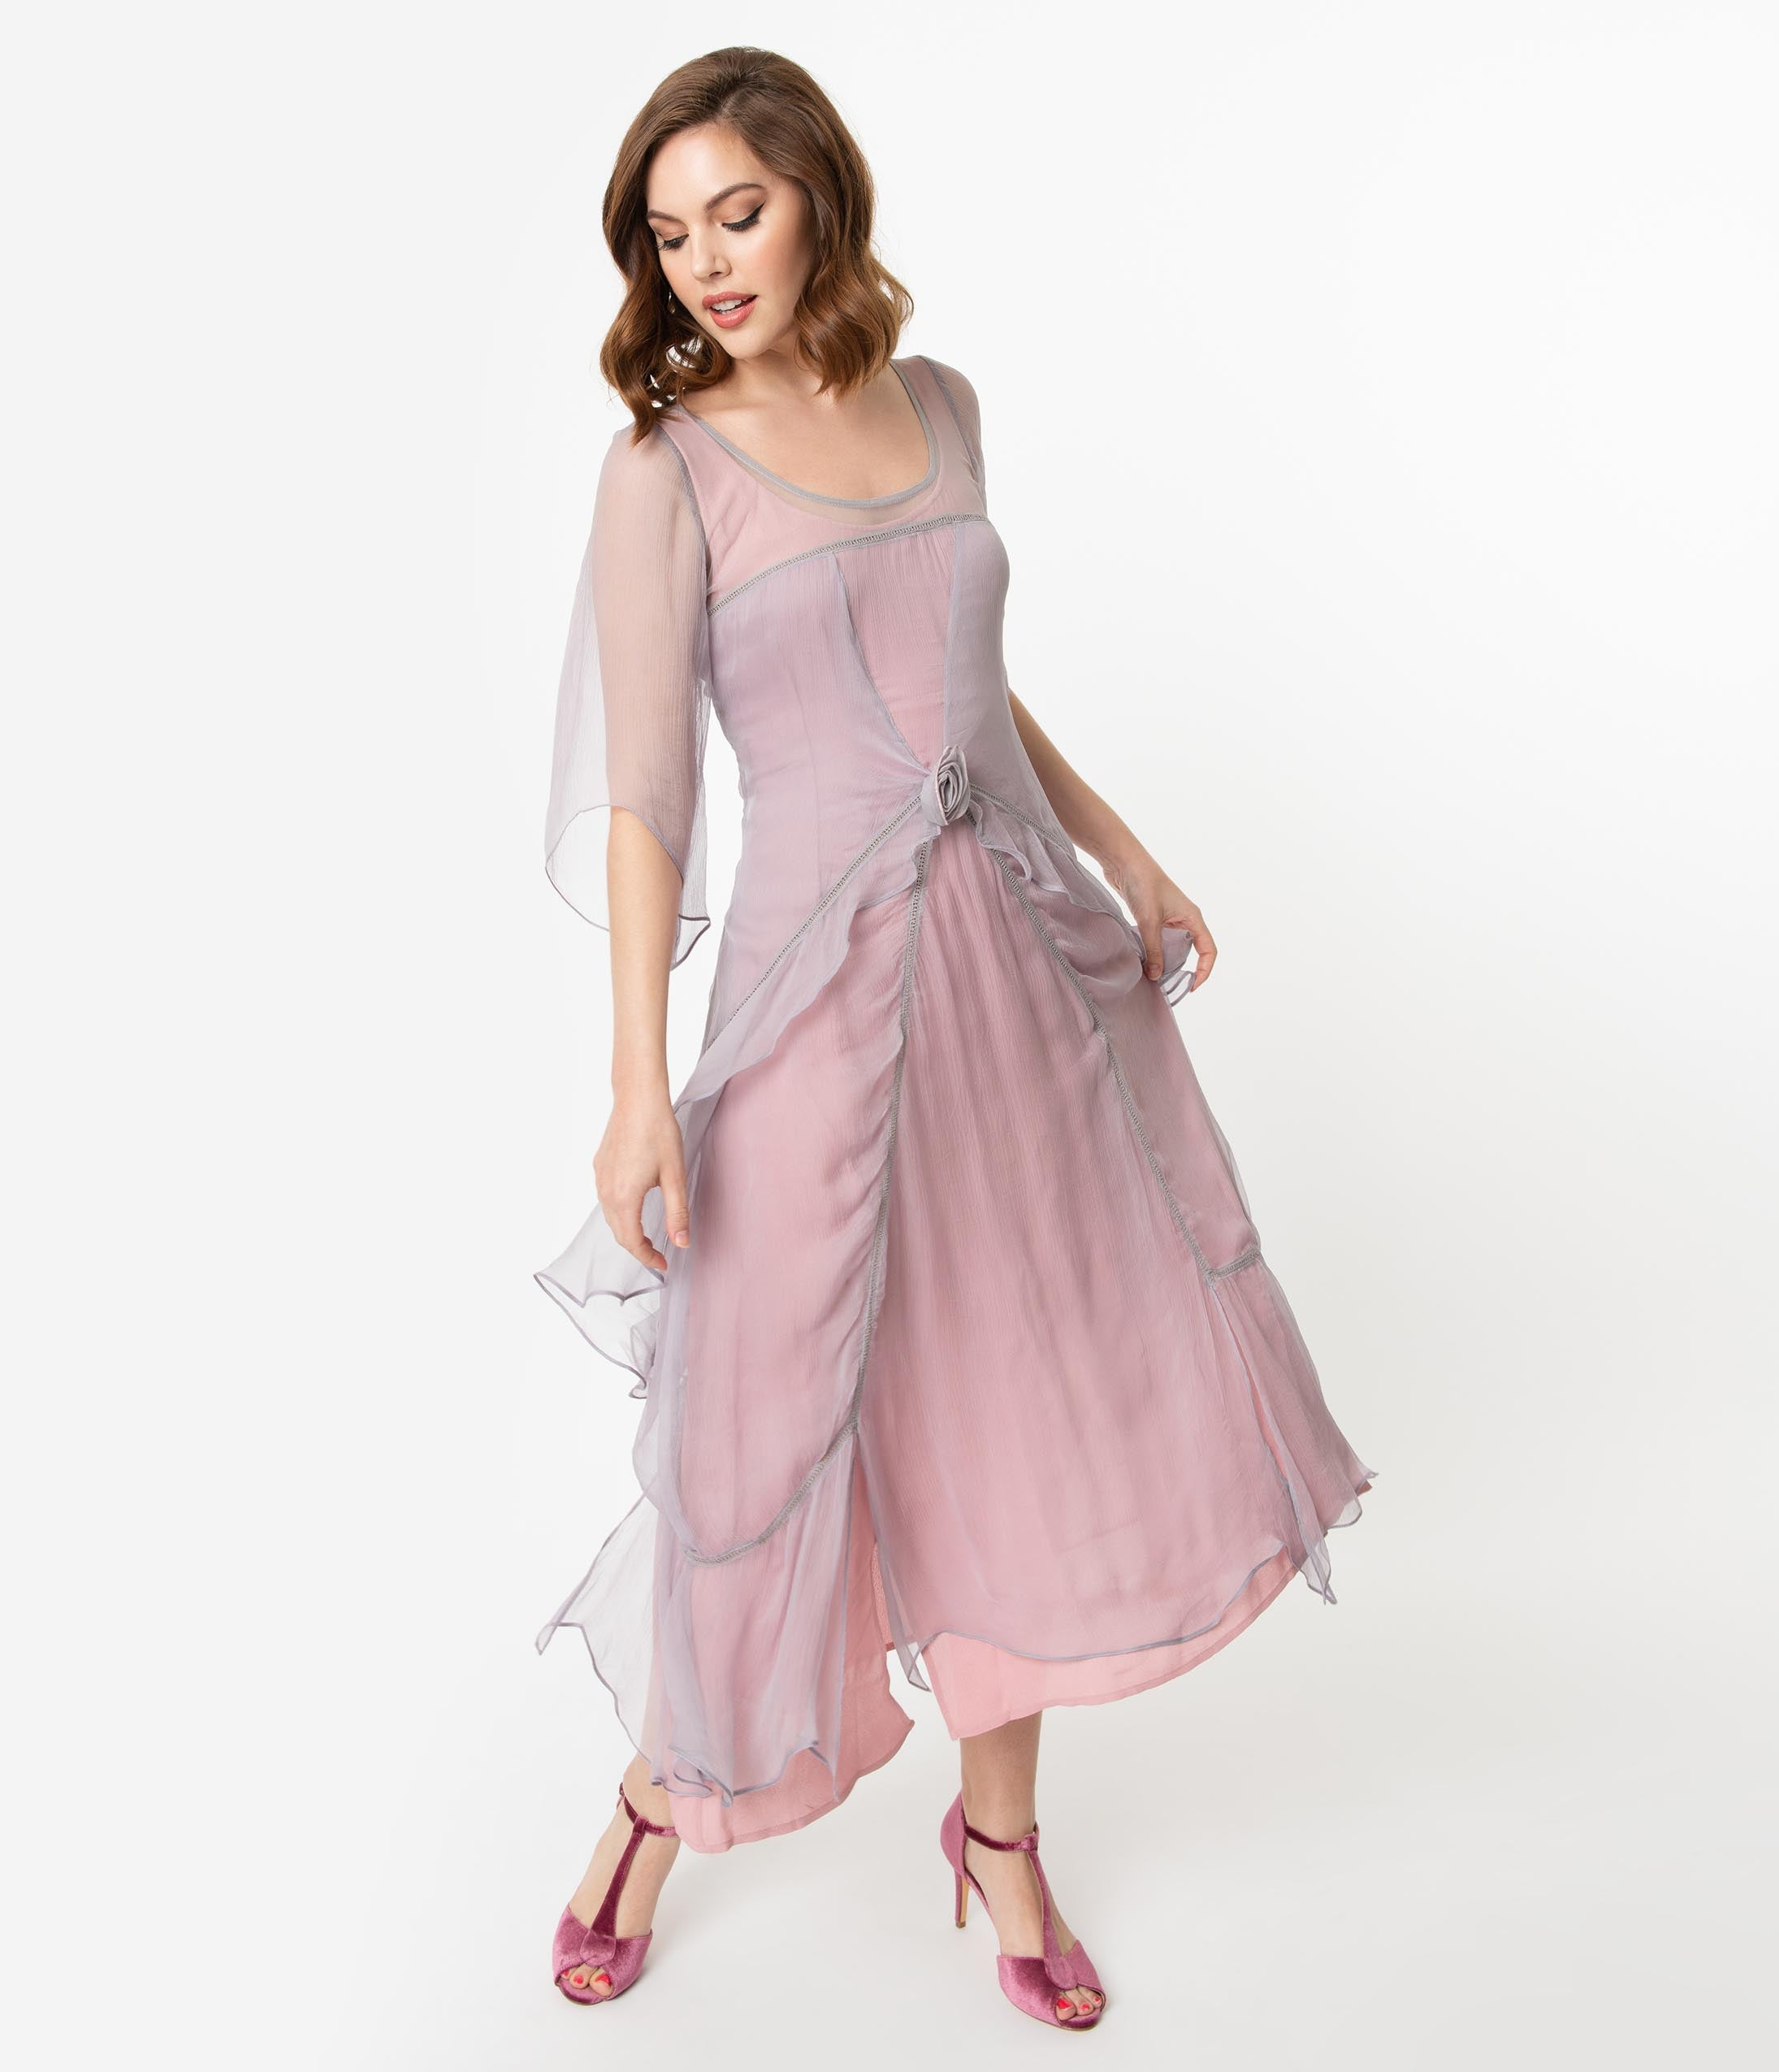 Flapper Costume: How to Dress Like a 20s Flapper Girl Vintage Style Mauve  Pink Chiffon Sleeved Edwardian Flapper Dress $242.00 AT vintagedancer.com